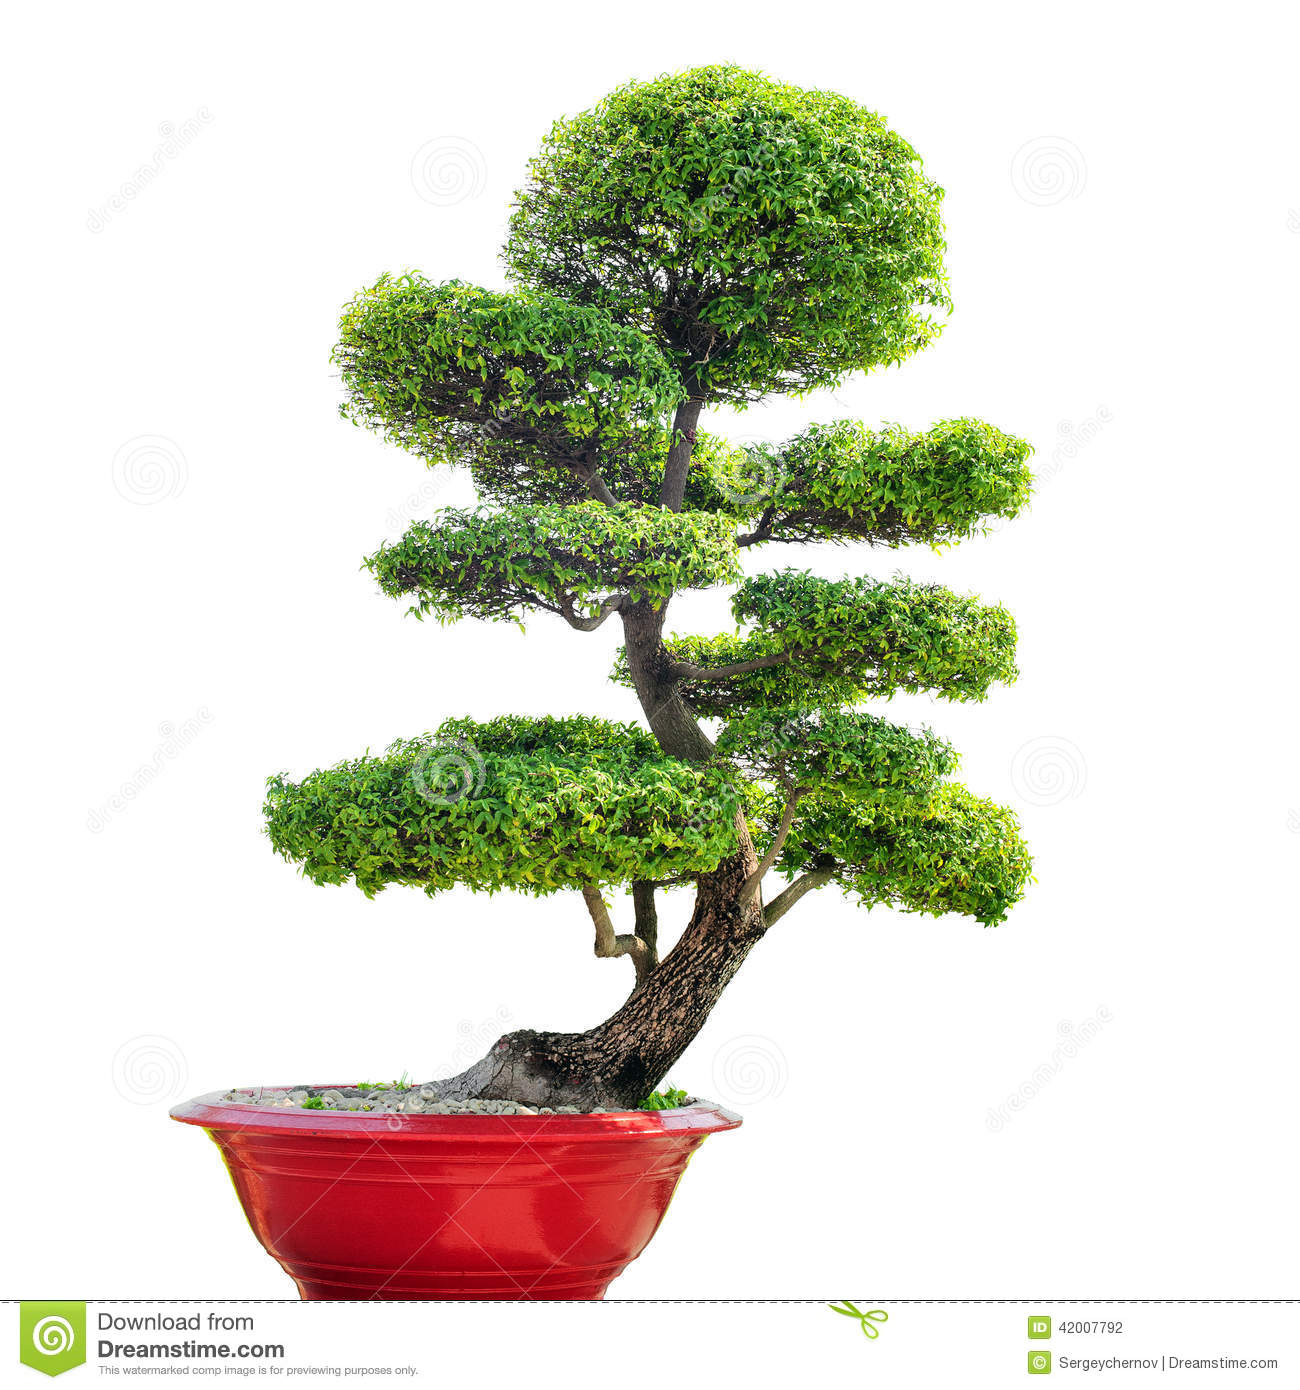 Bonsai tree isolated on white background stock photo for Typical japanese garden plants